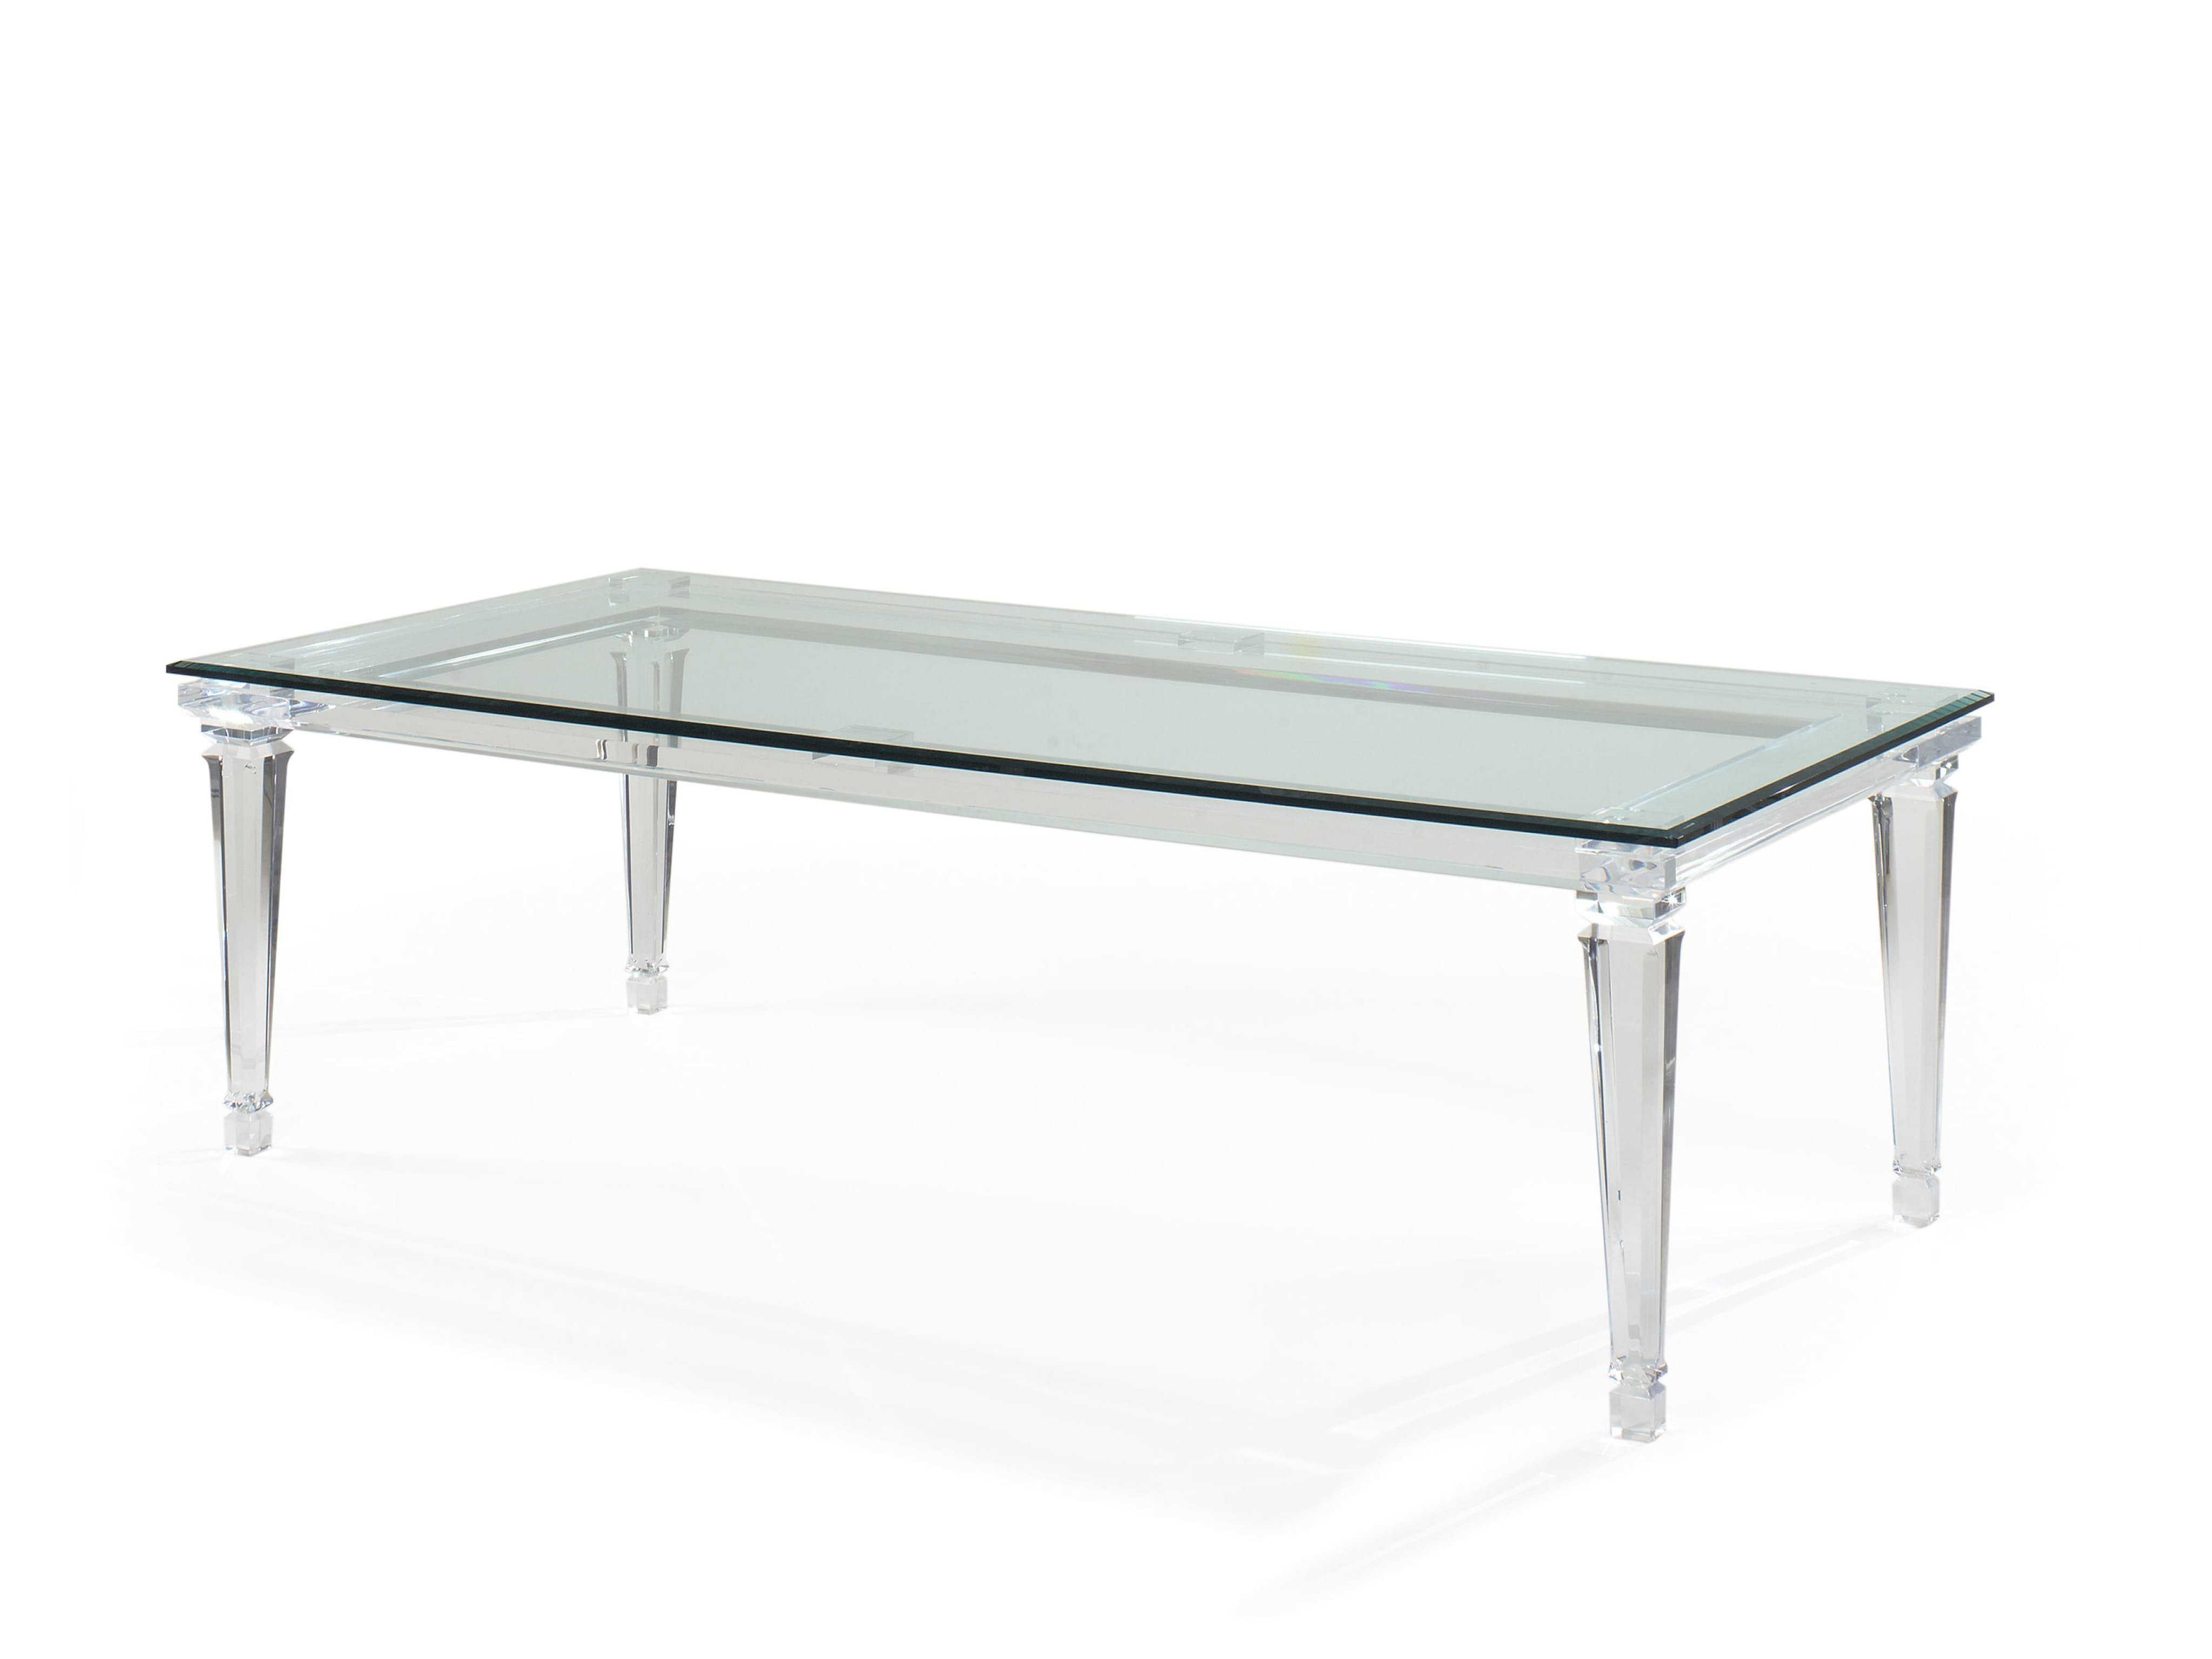 Acrylic Dining Tables Pertaining To Most Up To Date E.j. Victor Randall Tysinger Sancerre Acrylic 95'' X 47'' Dining (Gallery 10 of 25)